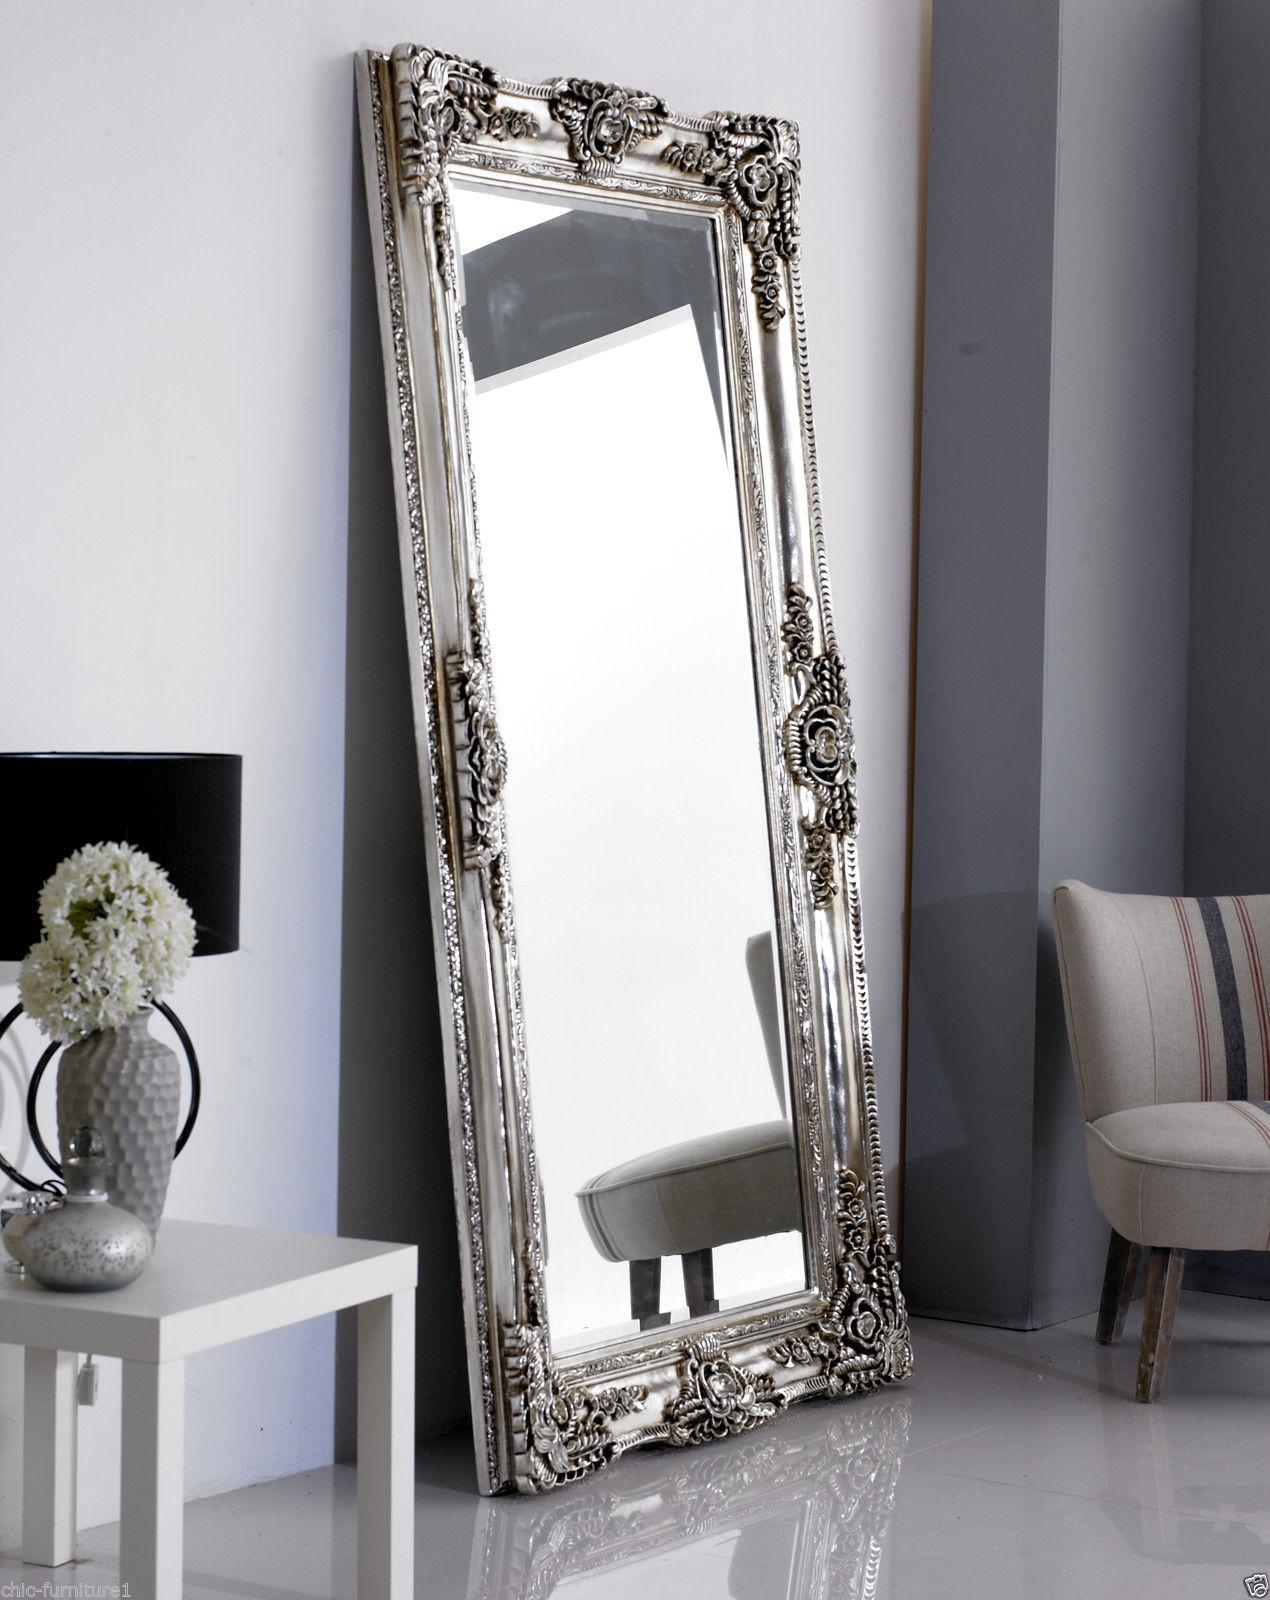 New!!! Large Rocco Leaner Silver Ornate Wall Mirror – 200X100Cm | Ebay Inside Silver Ornate Wall Mirror (Image 10 of 20)